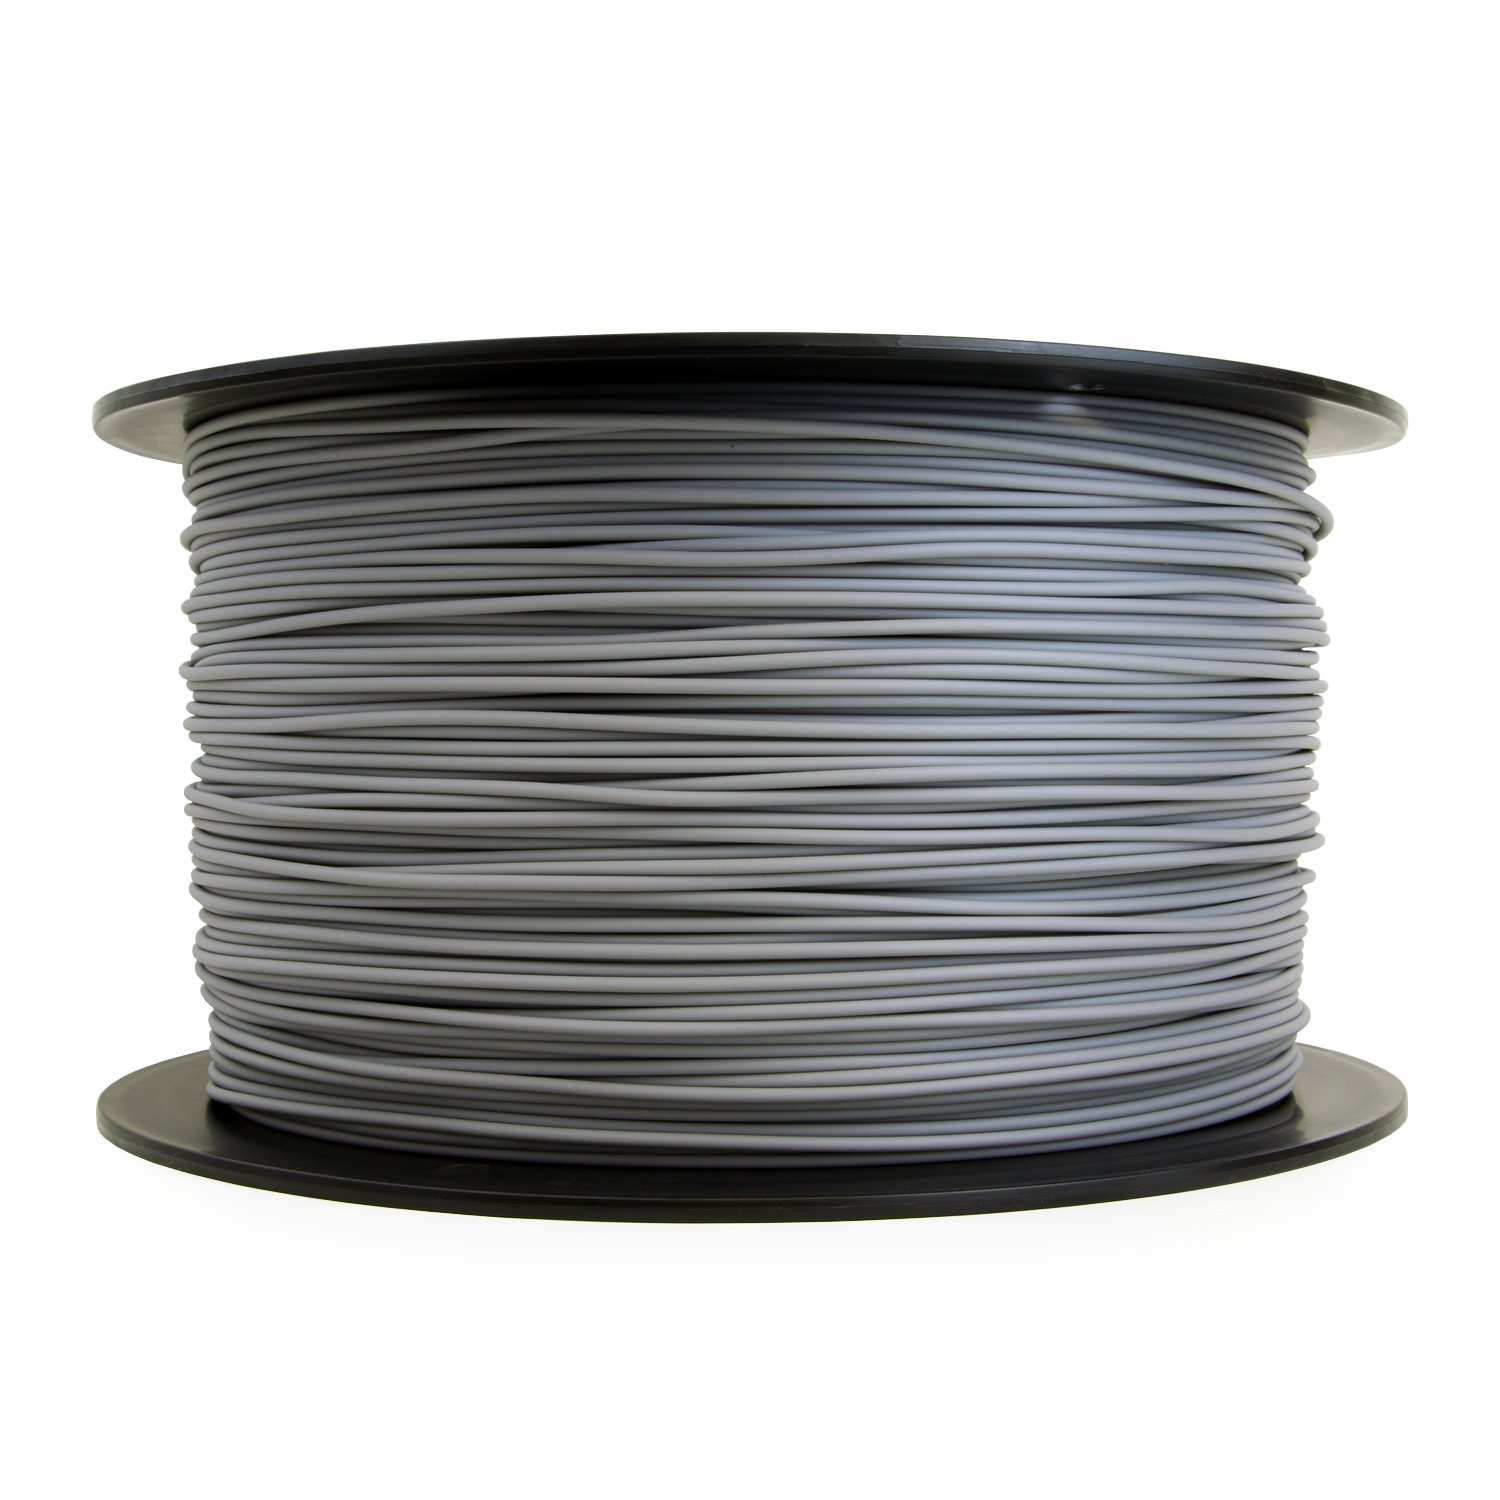 Nexeo 3D Printer Filament Copolyester Amphora AM3300 White 2.85mm 1.1lb